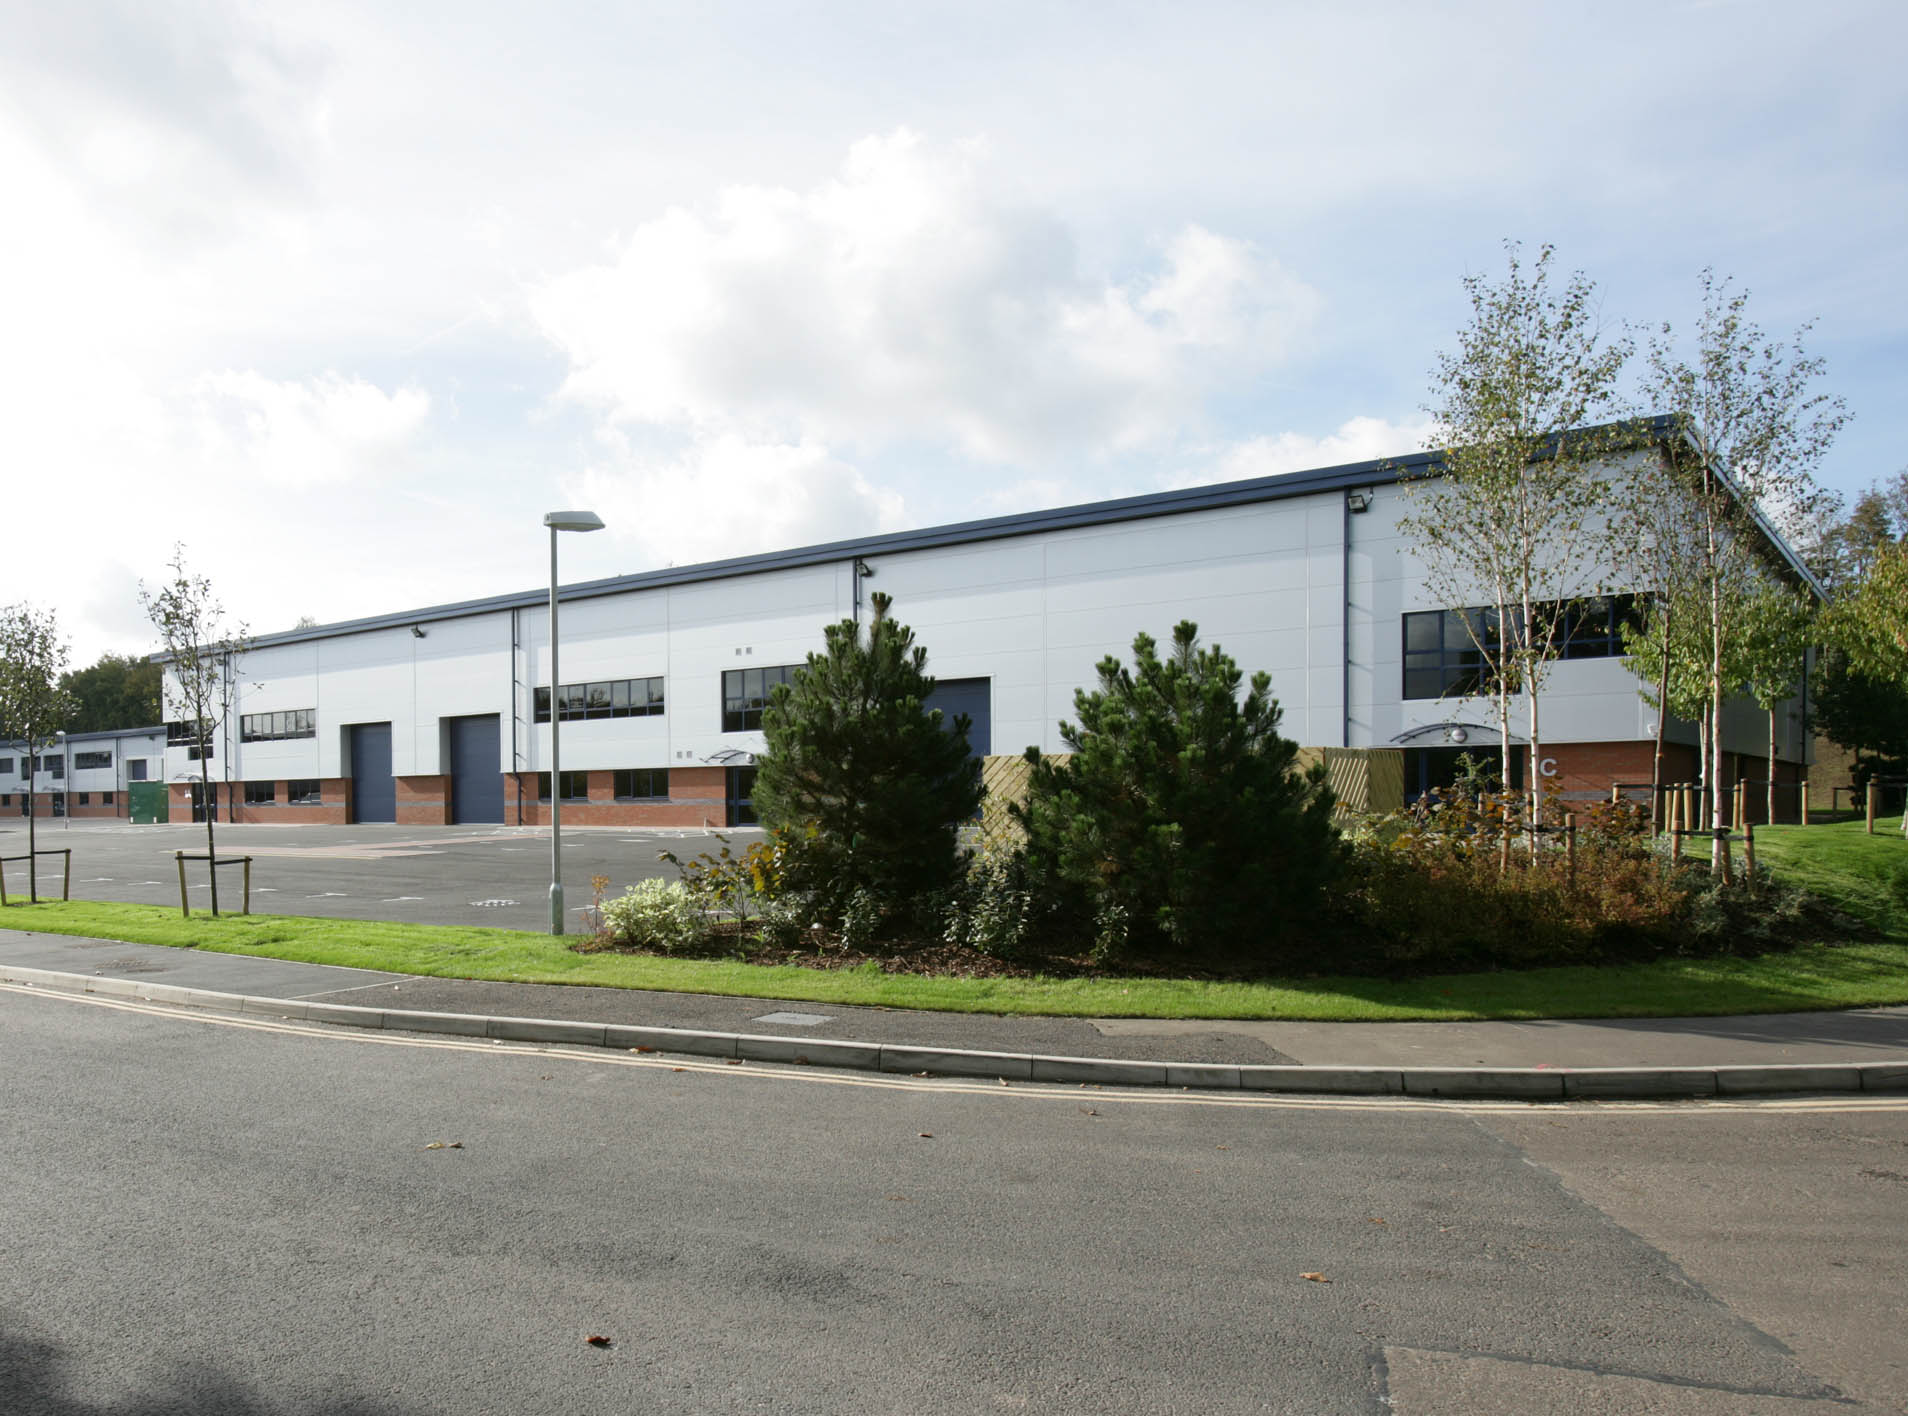 HENLEY BUSINESS PARK - UNIT 3B, Pirbright Road, Normandy, GUILDFORD - LETTING